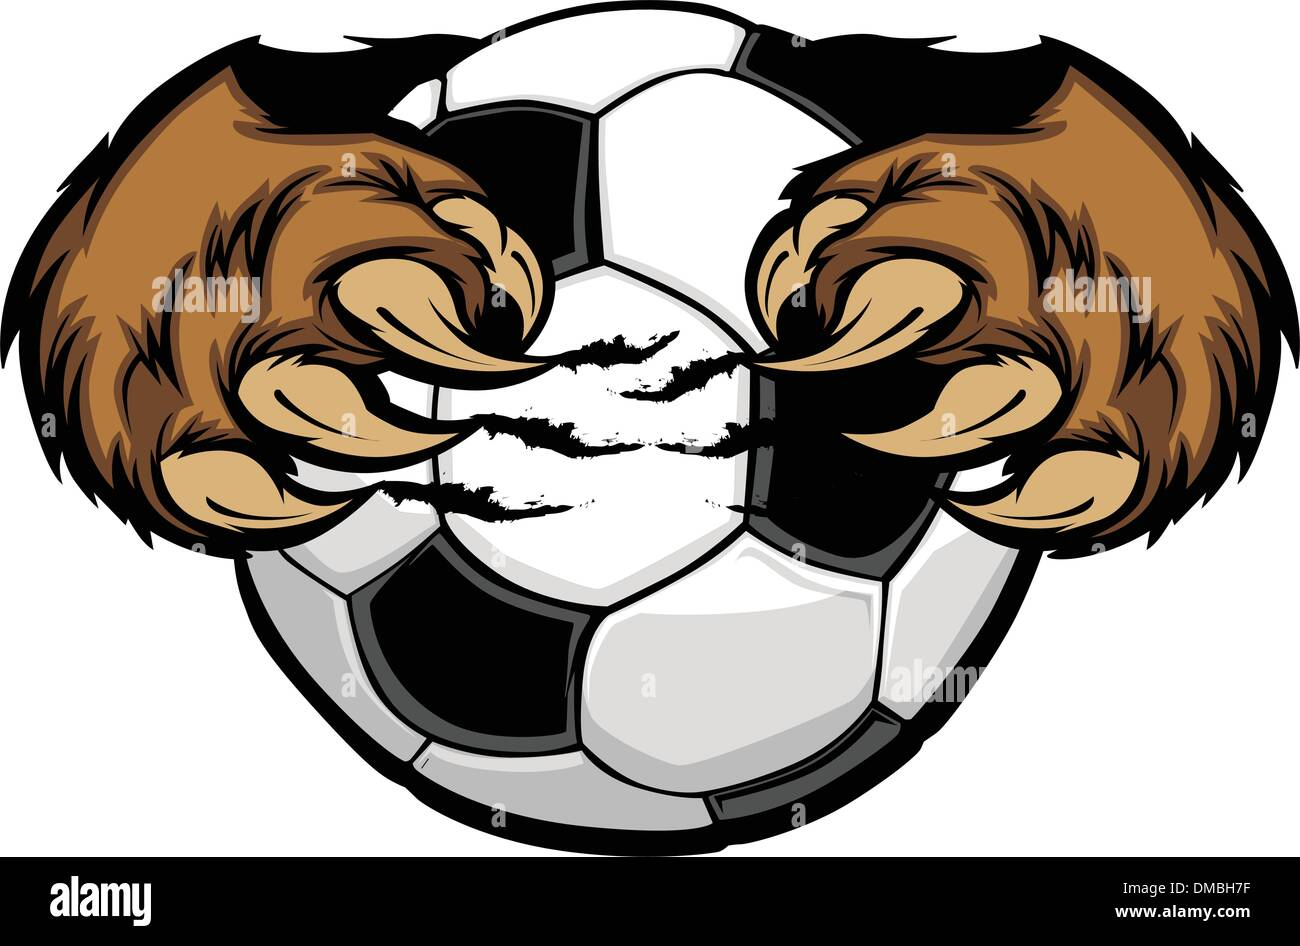 Soccer Ball With Bear Claws Vector Image - Stock Image